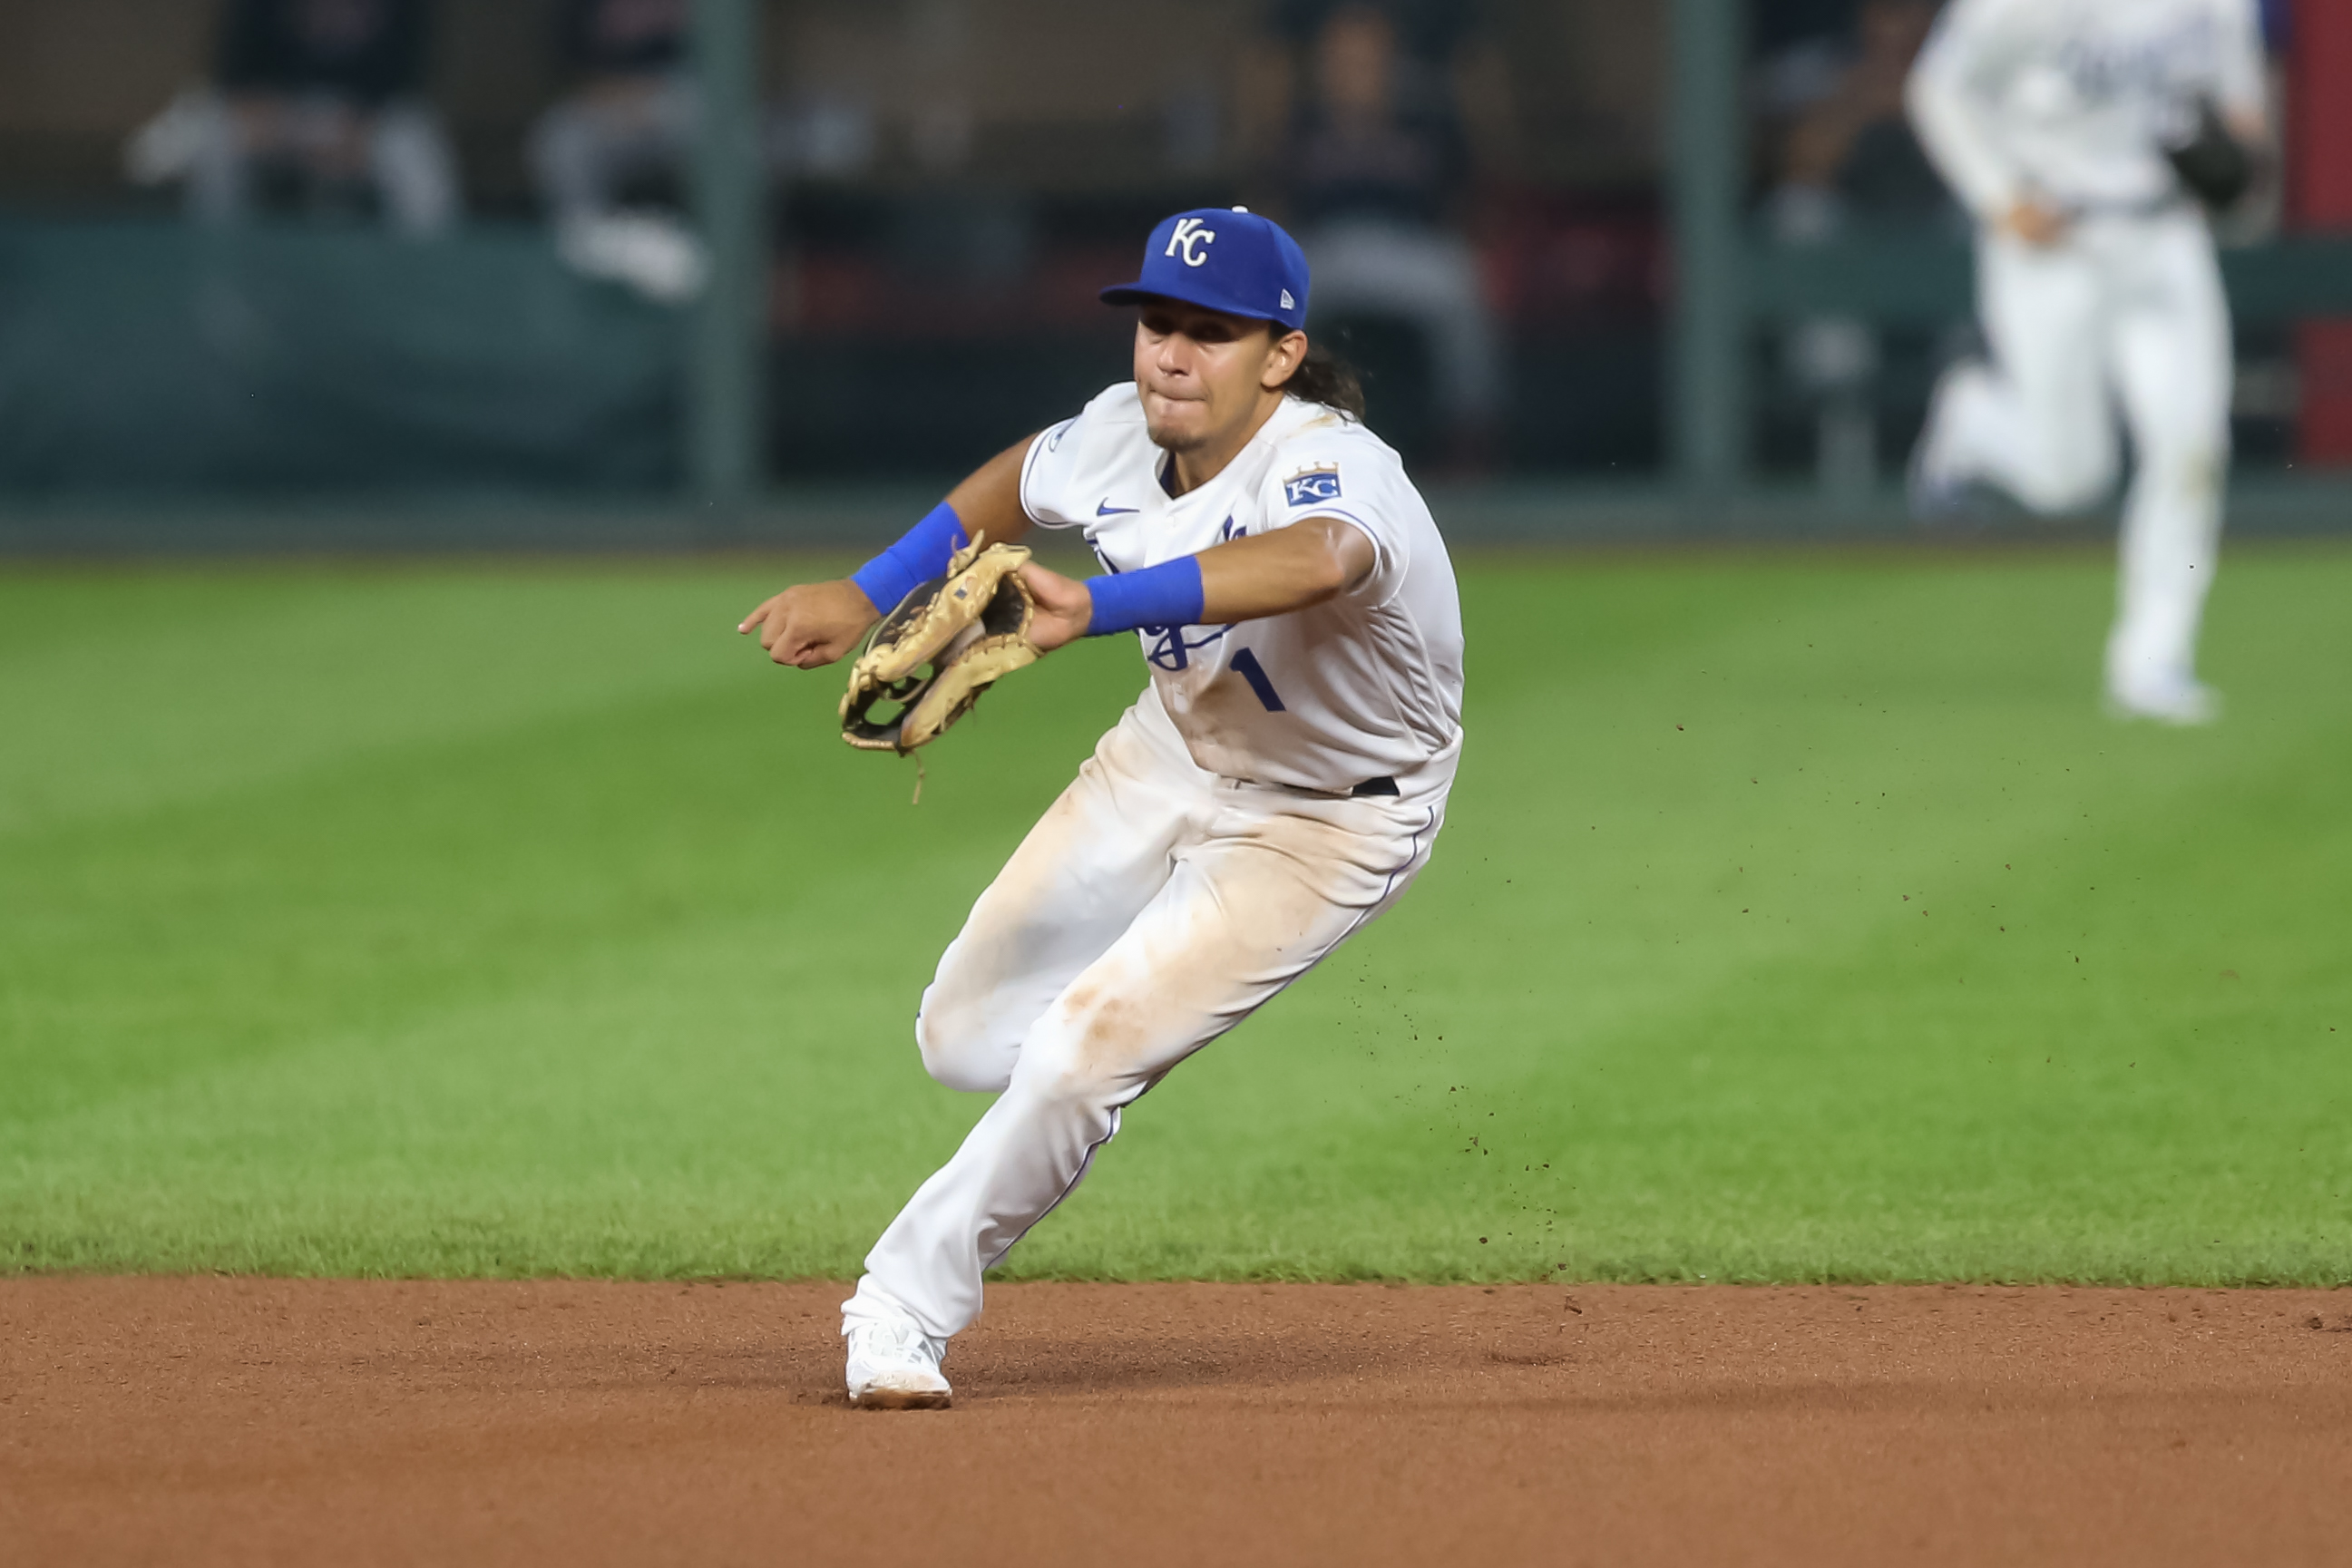 Kansas City Royals Nicky Lopez (1) comes up with a ground ball in the eighth inning of an MLB game between the Cleveland Indians and Kansas City Royals on September 1, 2020 at Kauffman Stadium in Kansas City, MO.